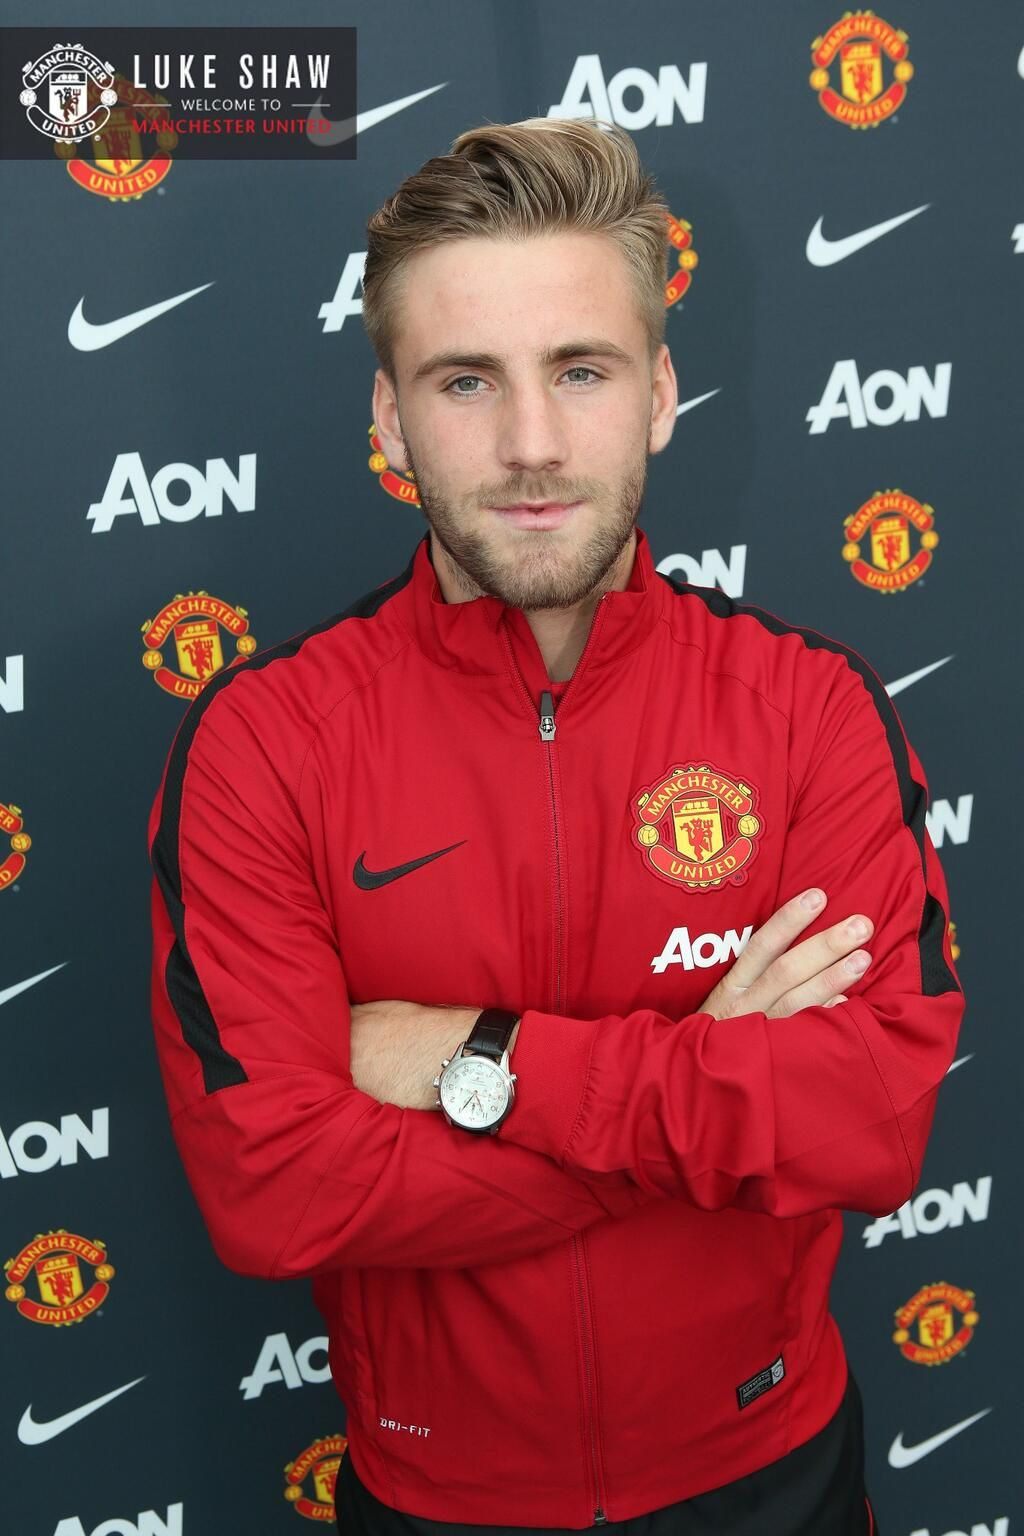 Manchester United On Twitter The Unit Manchester United Manchester United Transfer